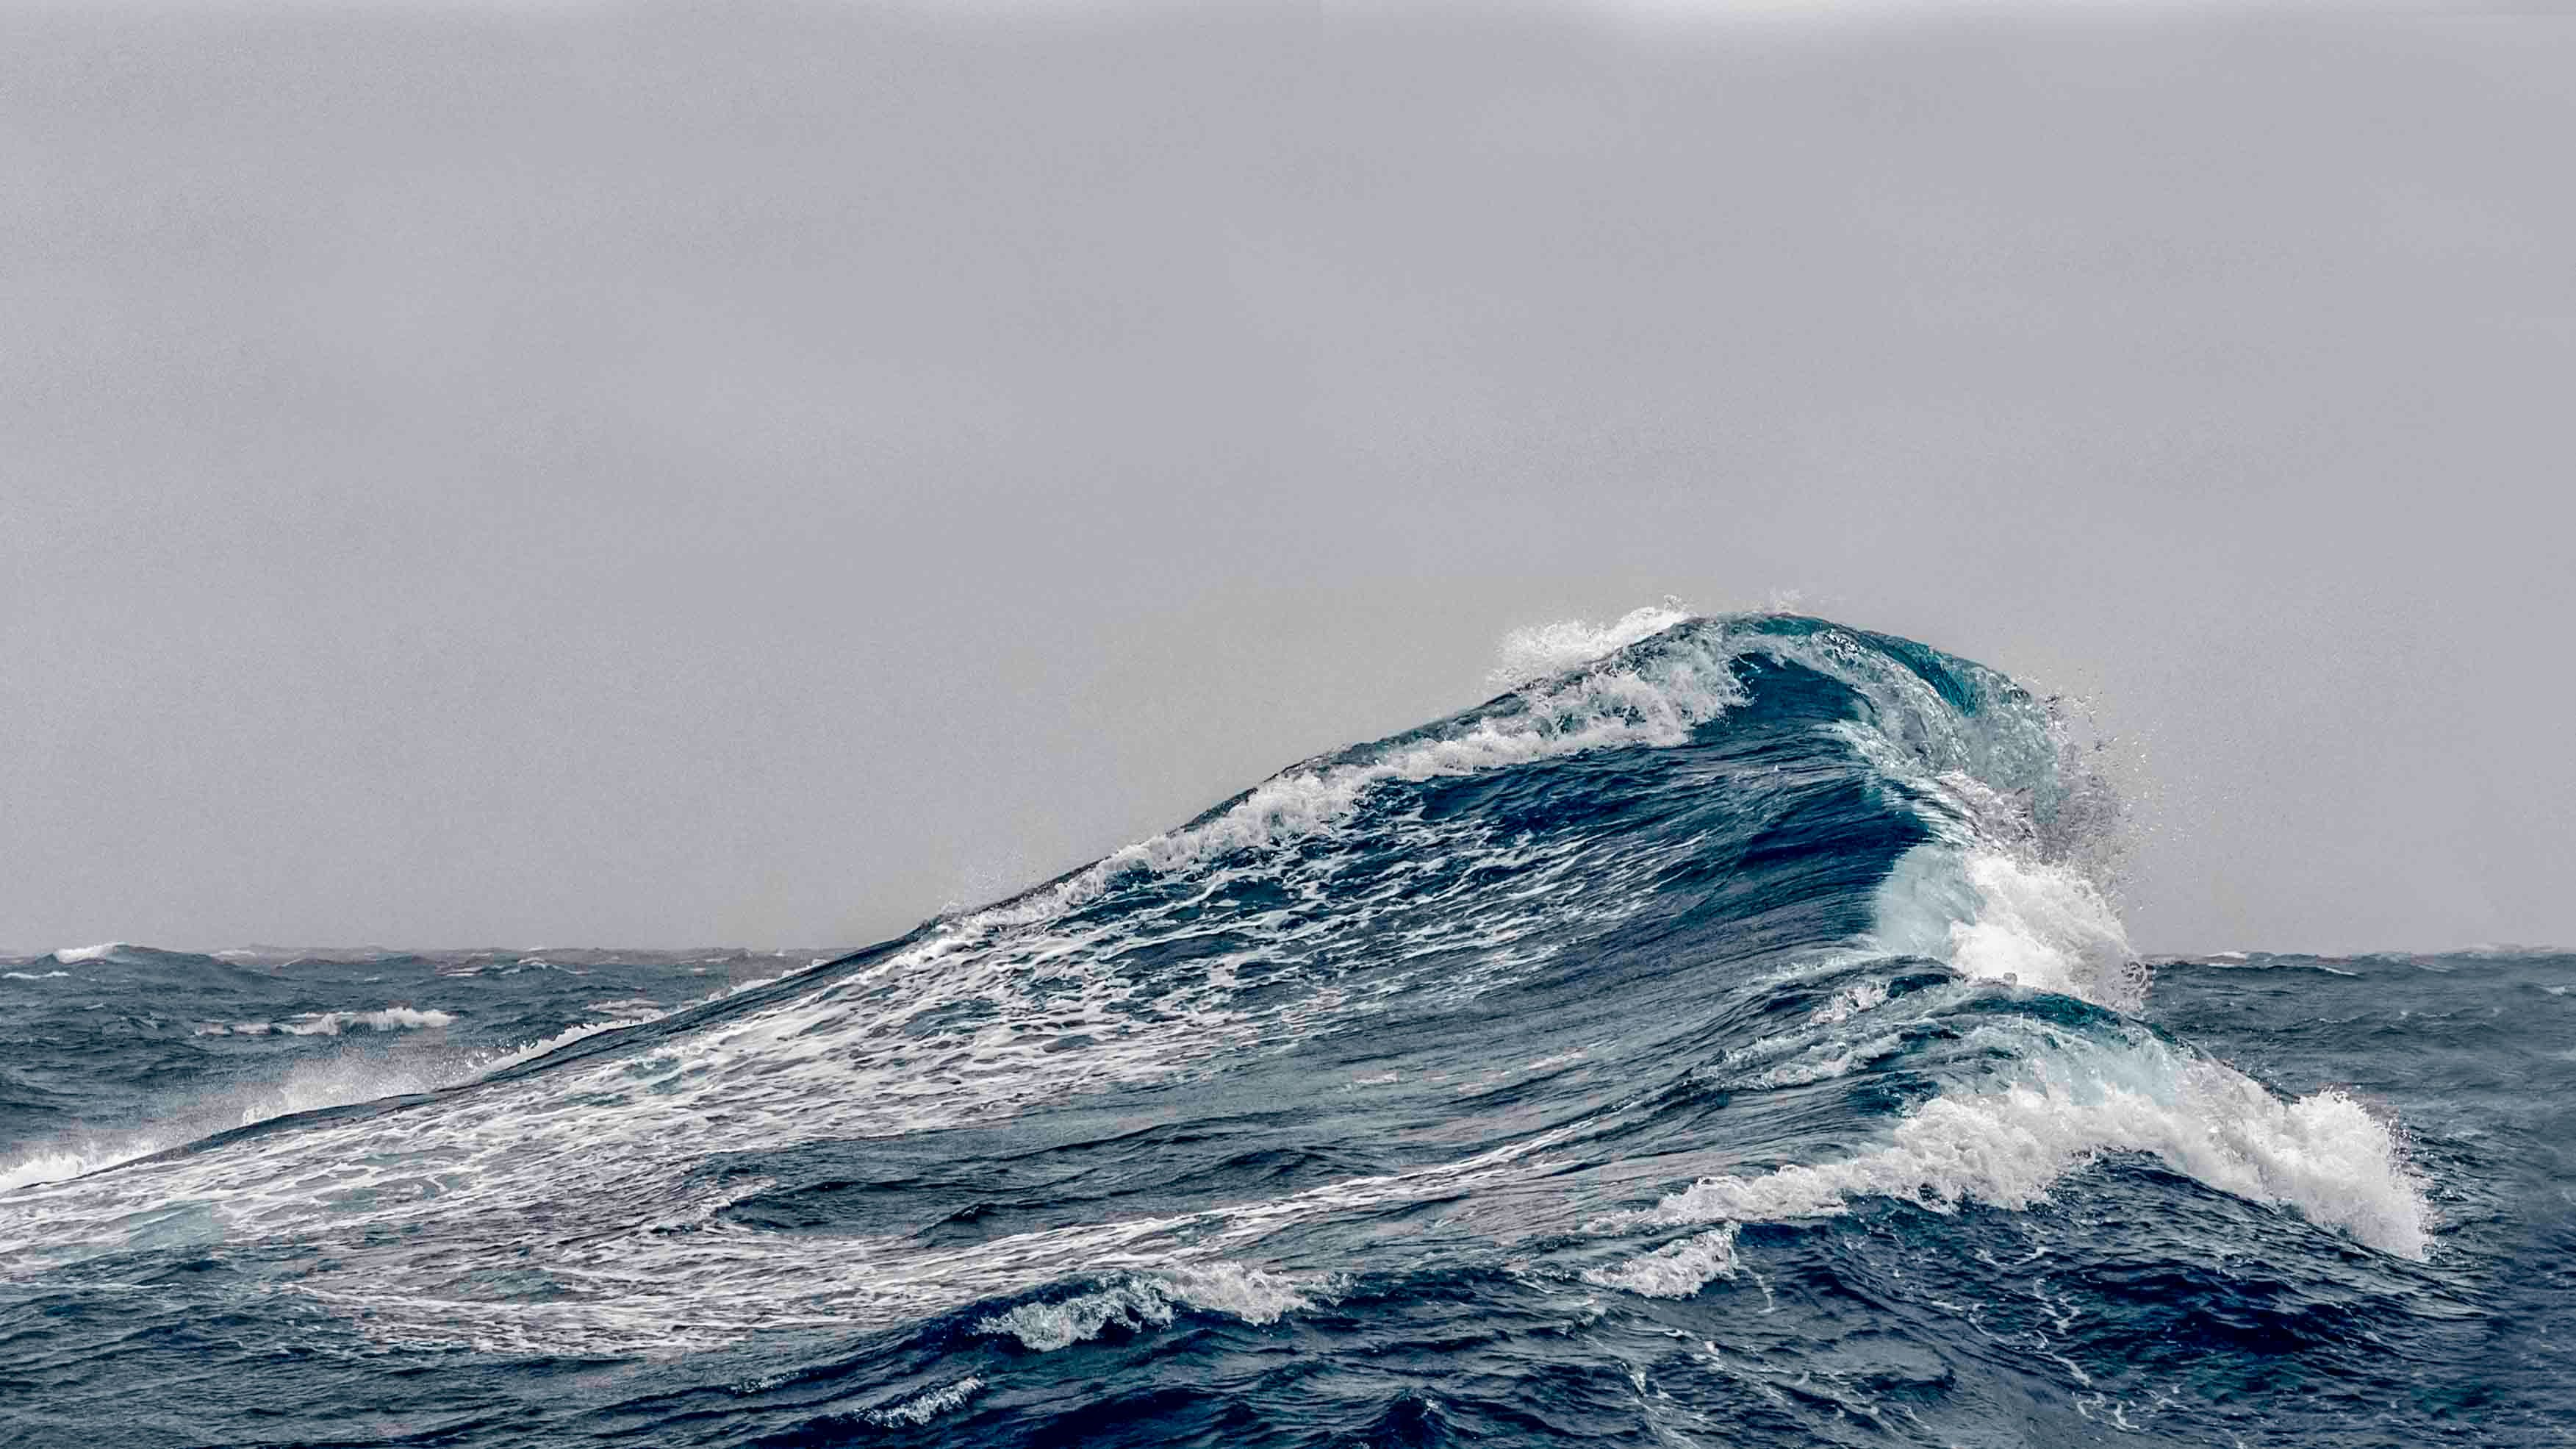 Waves are extraordinarily powerful - what if a ship could draw power from the waves to move, rather than fight against them? (Credit: Getty Images)